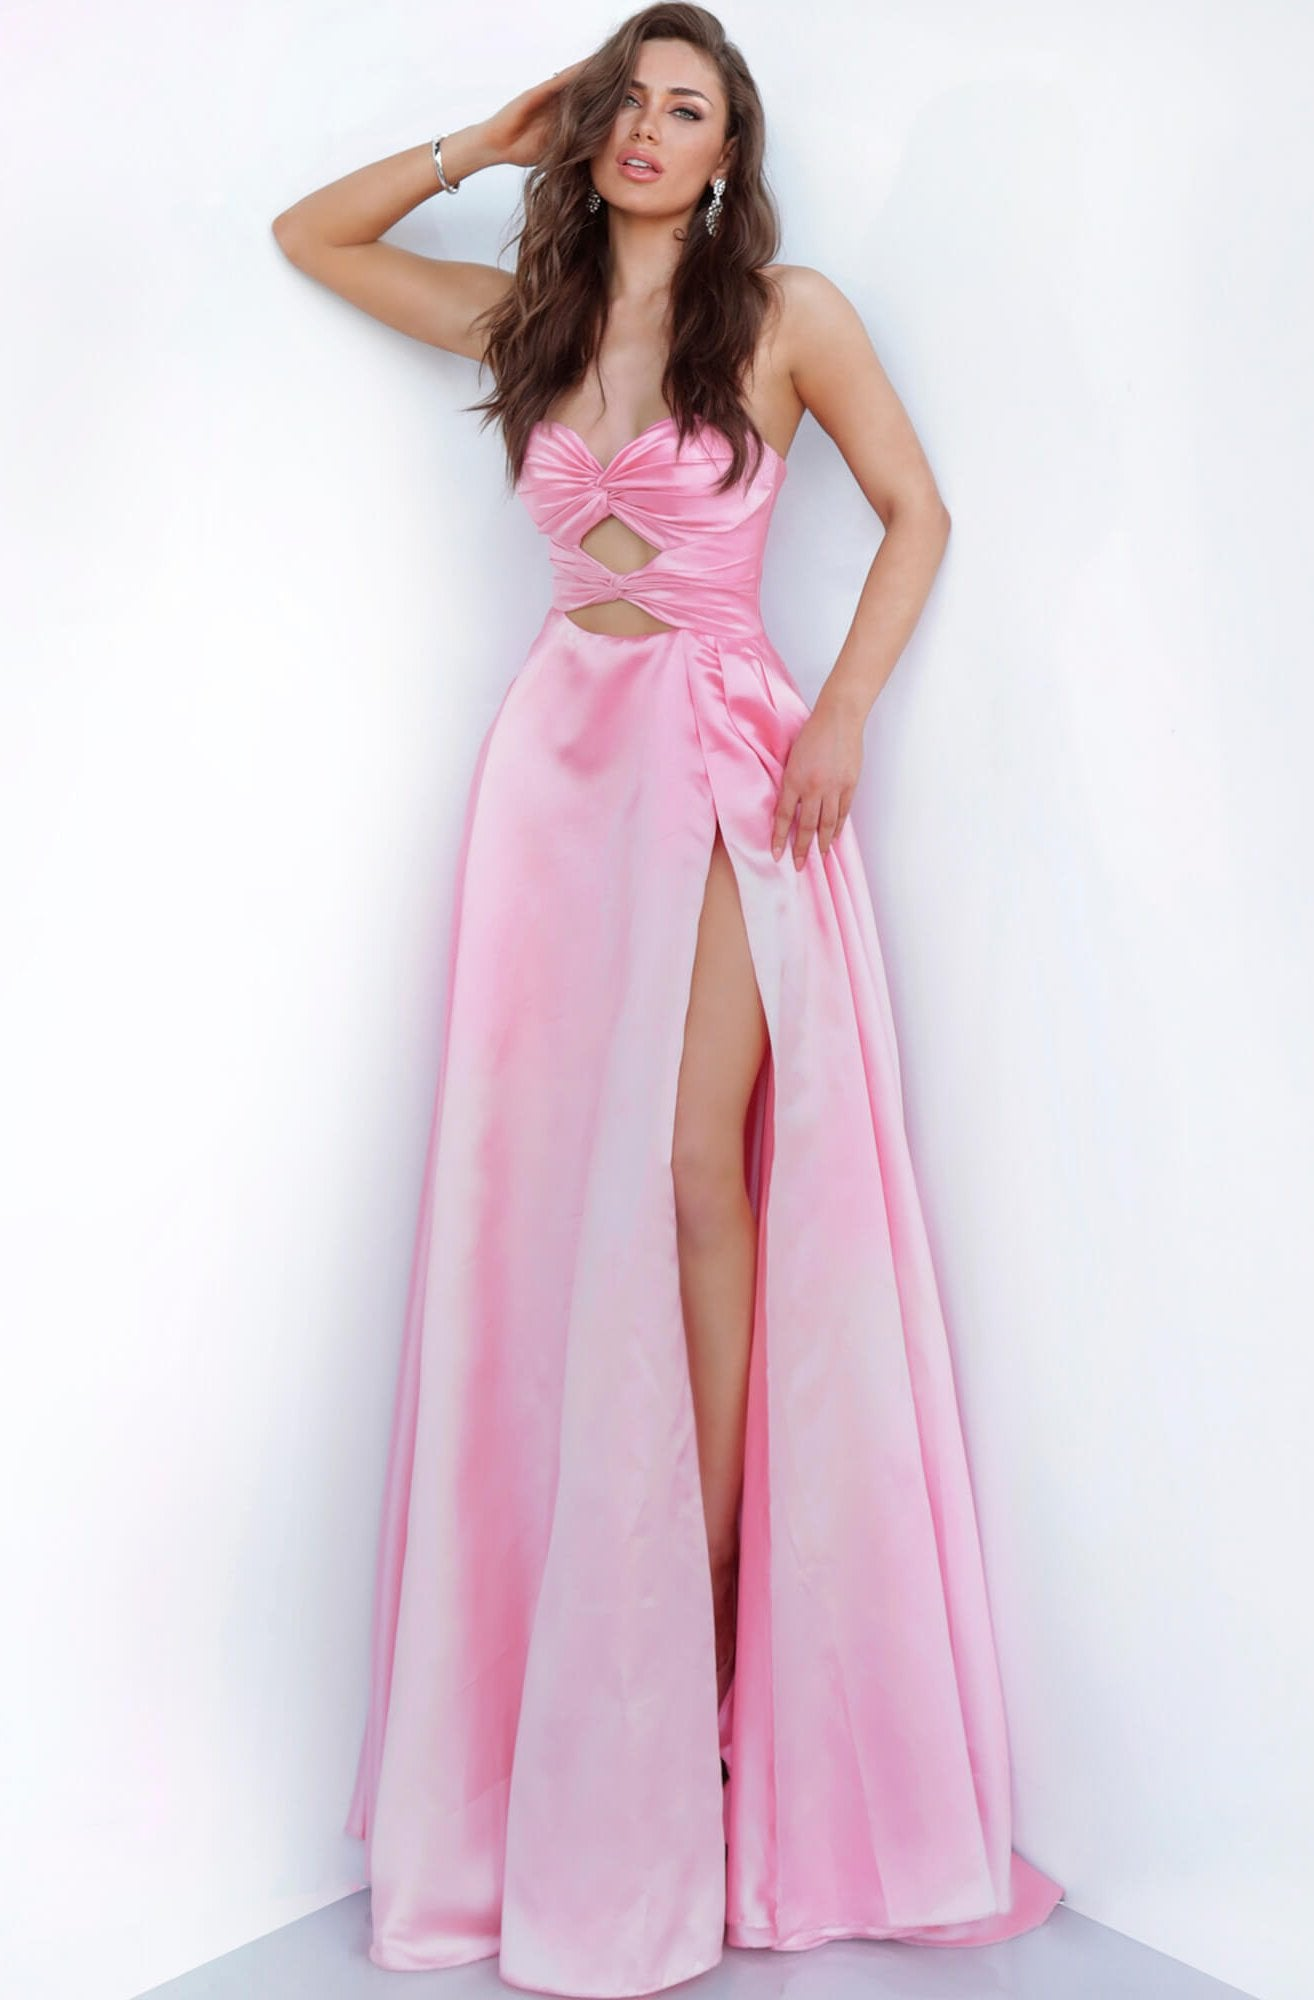 Jovani - 1815 Cutout Ornate Knotted Ruche Long Gown In Pink